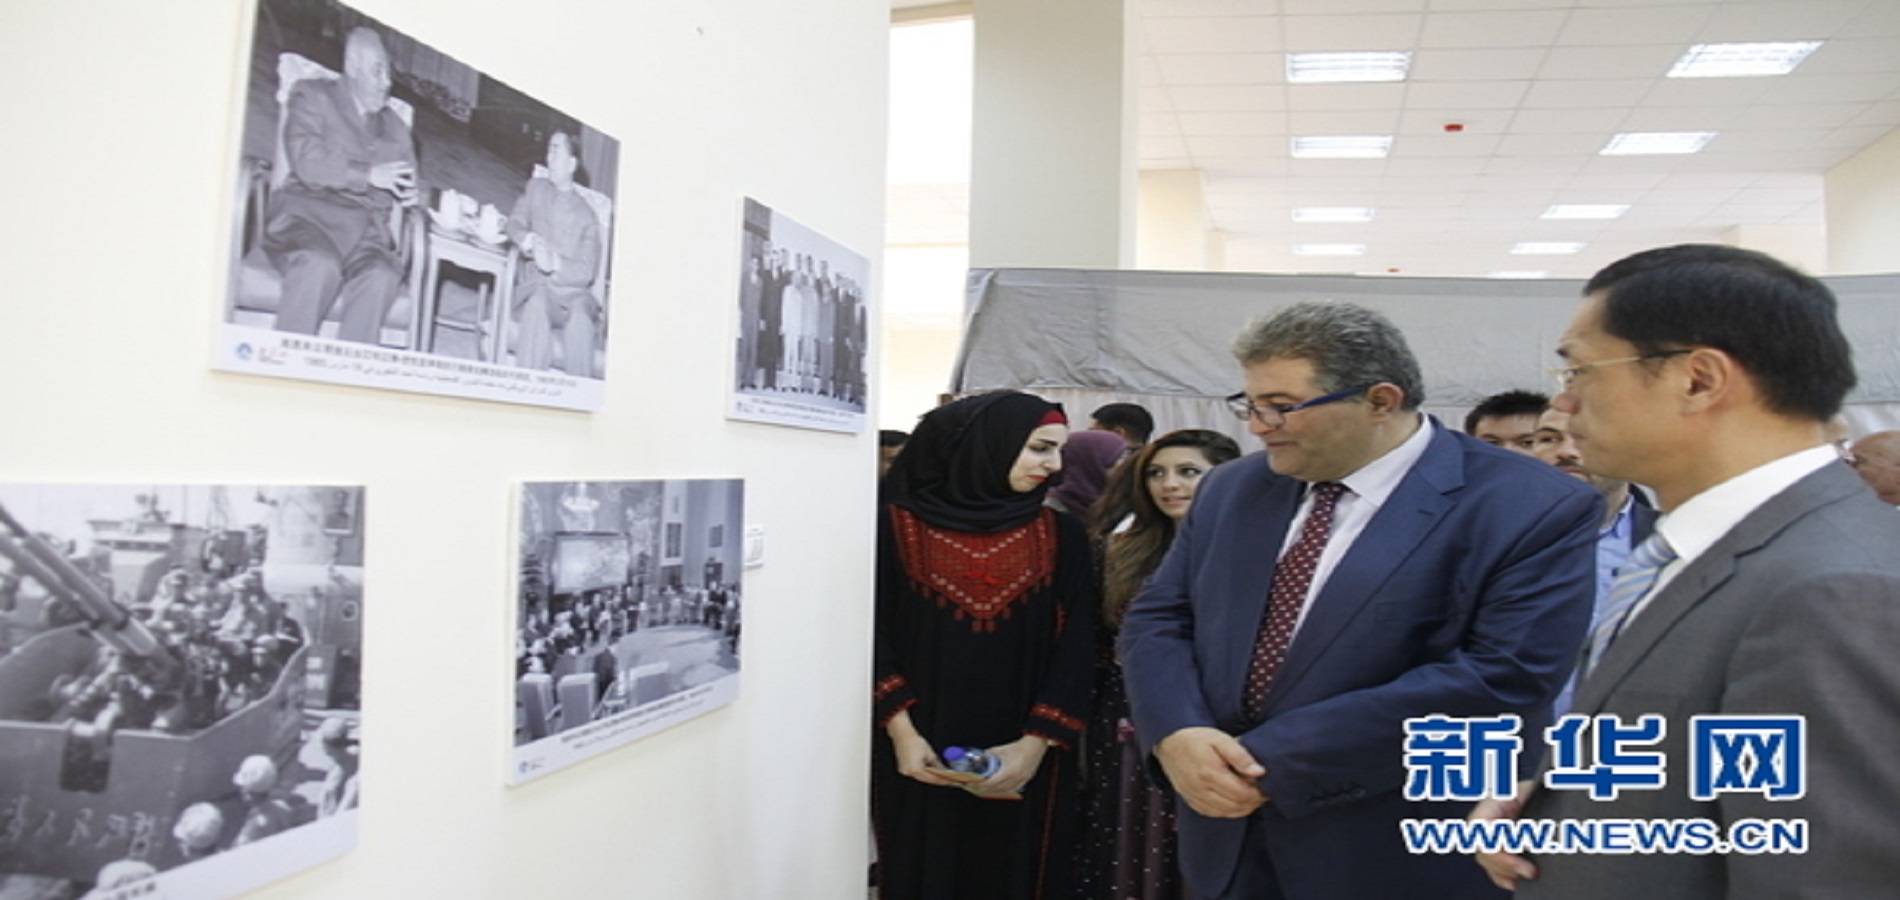 Al-Quds University sponsors photo gallery on China on September 15, 2018